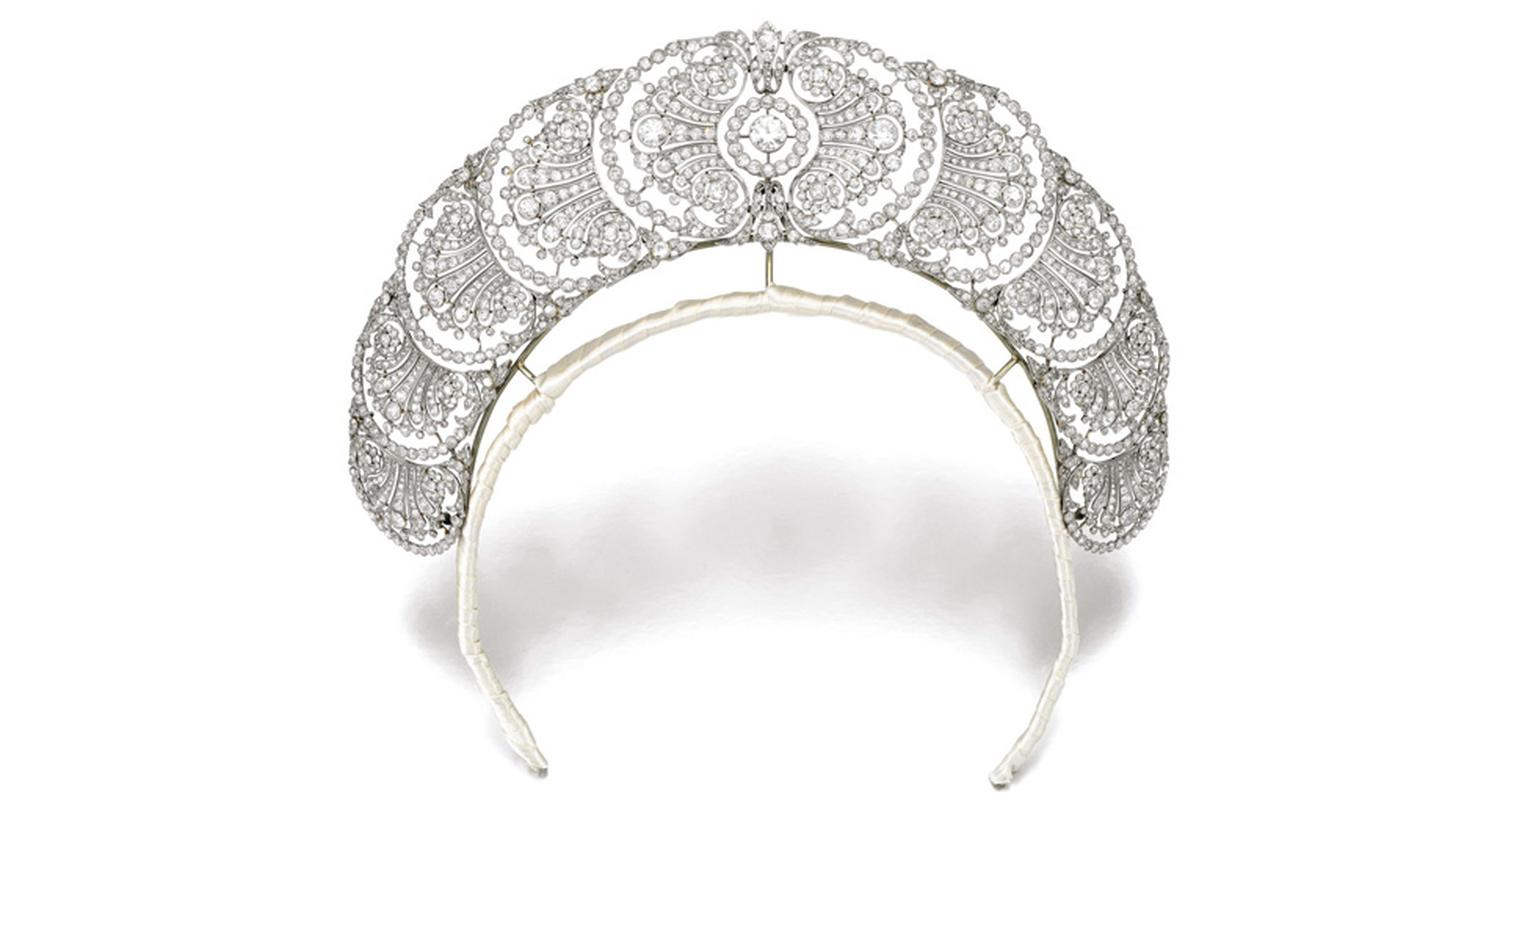 Lot 287. Property of Ducal House. Diamond Tiara. 1920's. Estimate £35,000-£55,000